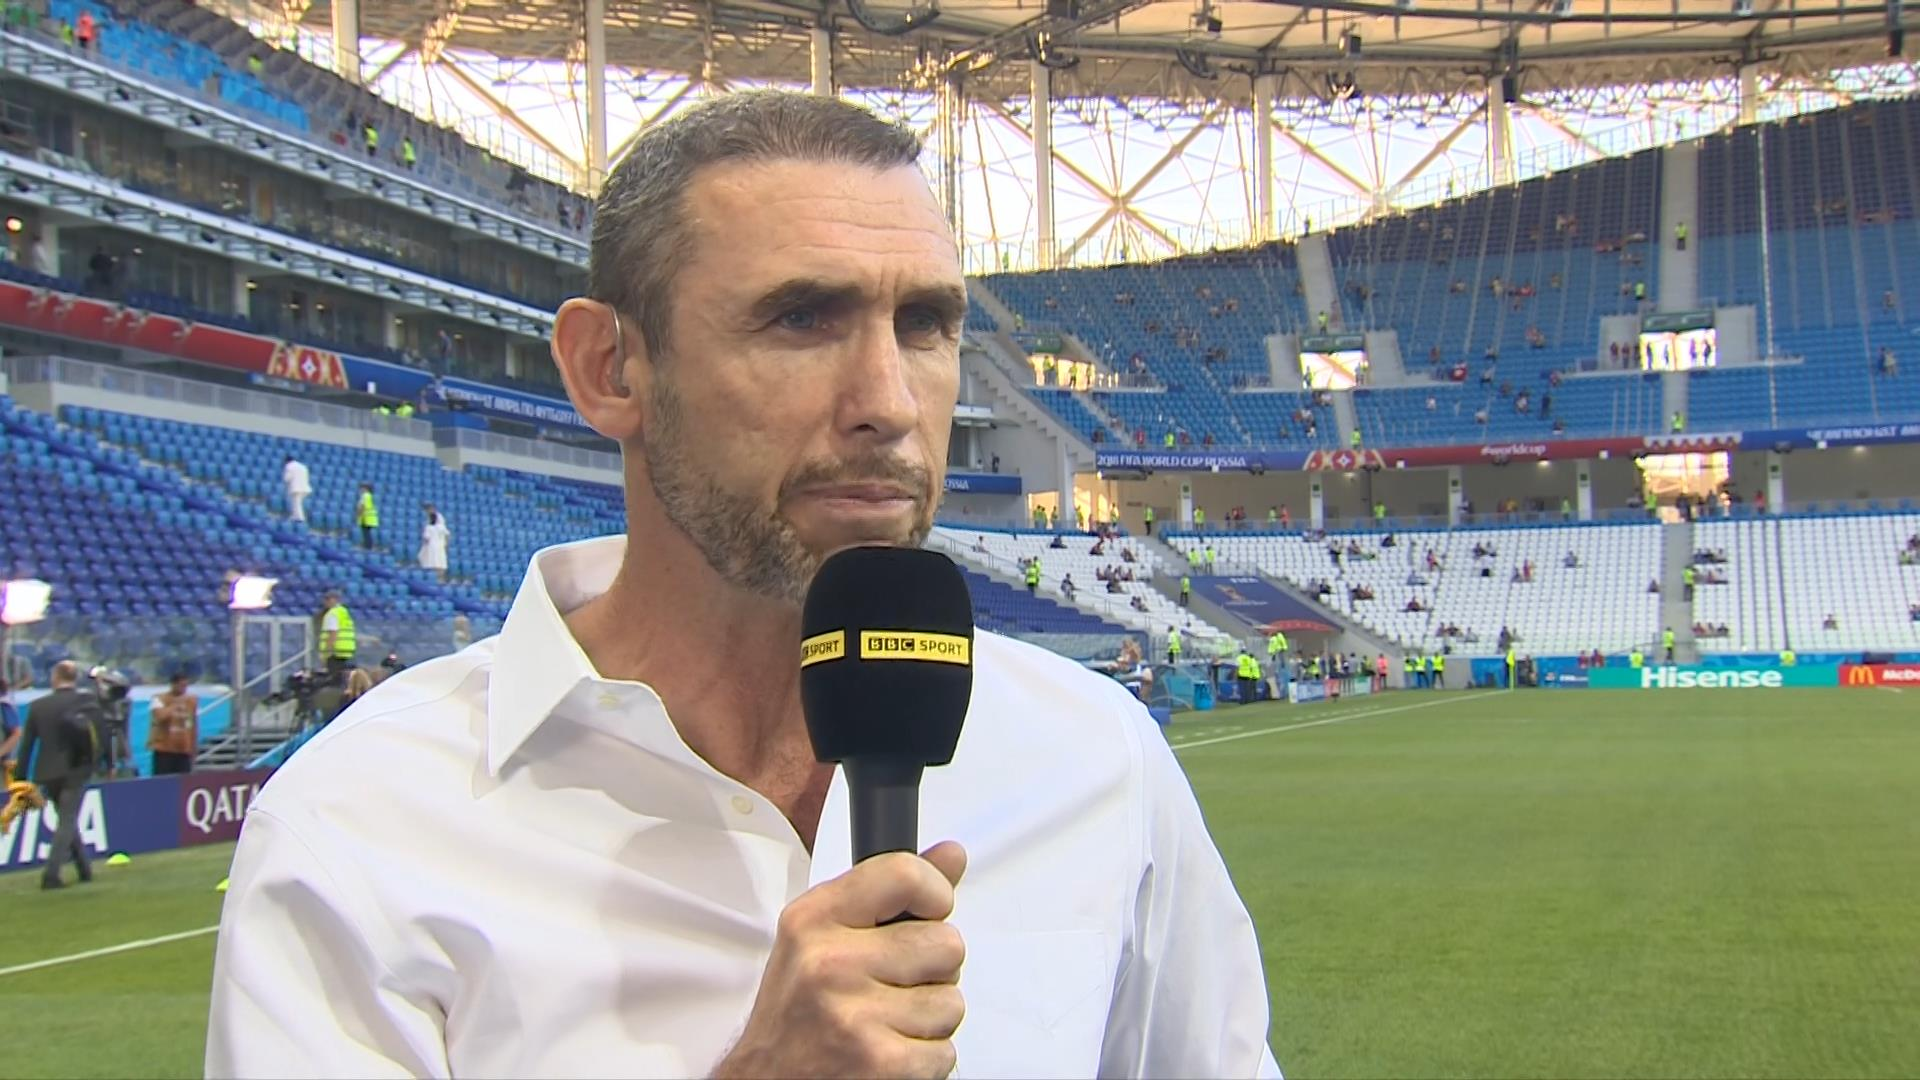 Martin Keown - BBC World Cup 2018 (1)